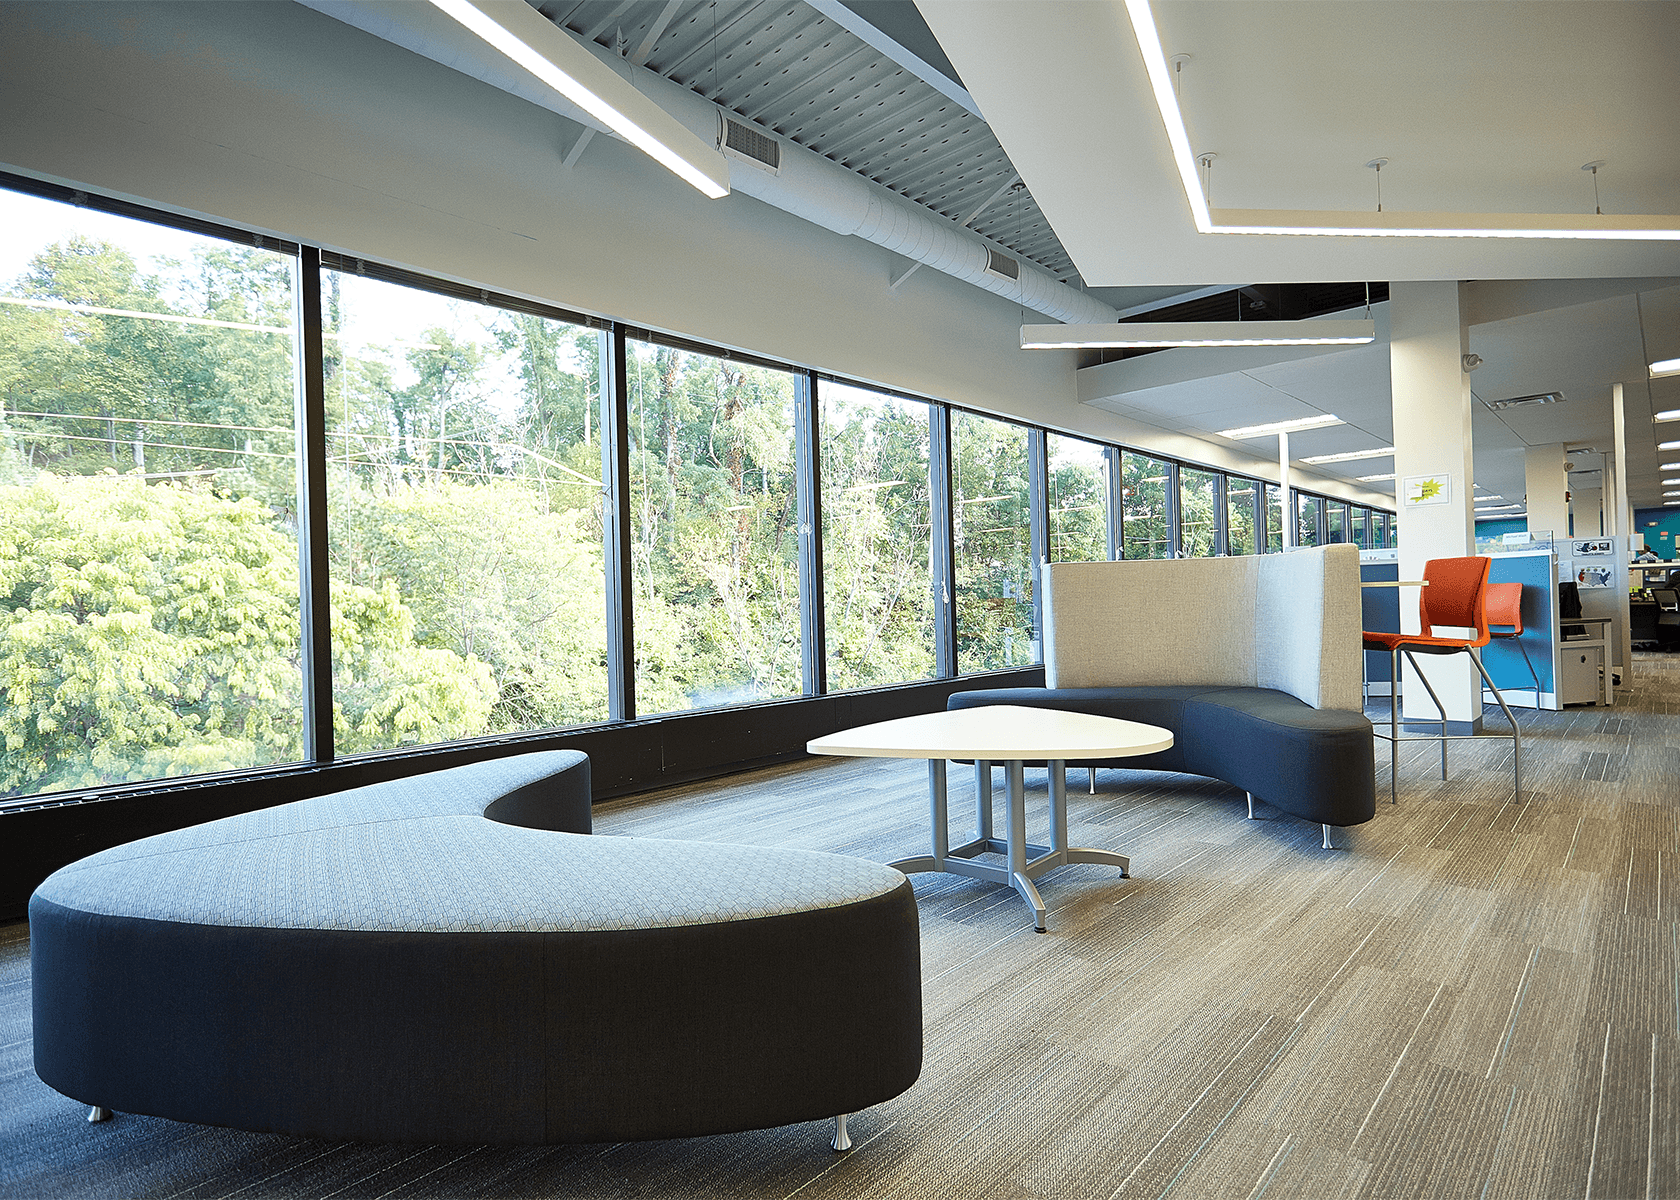 Collaborative workspace with modern abstract couches and table